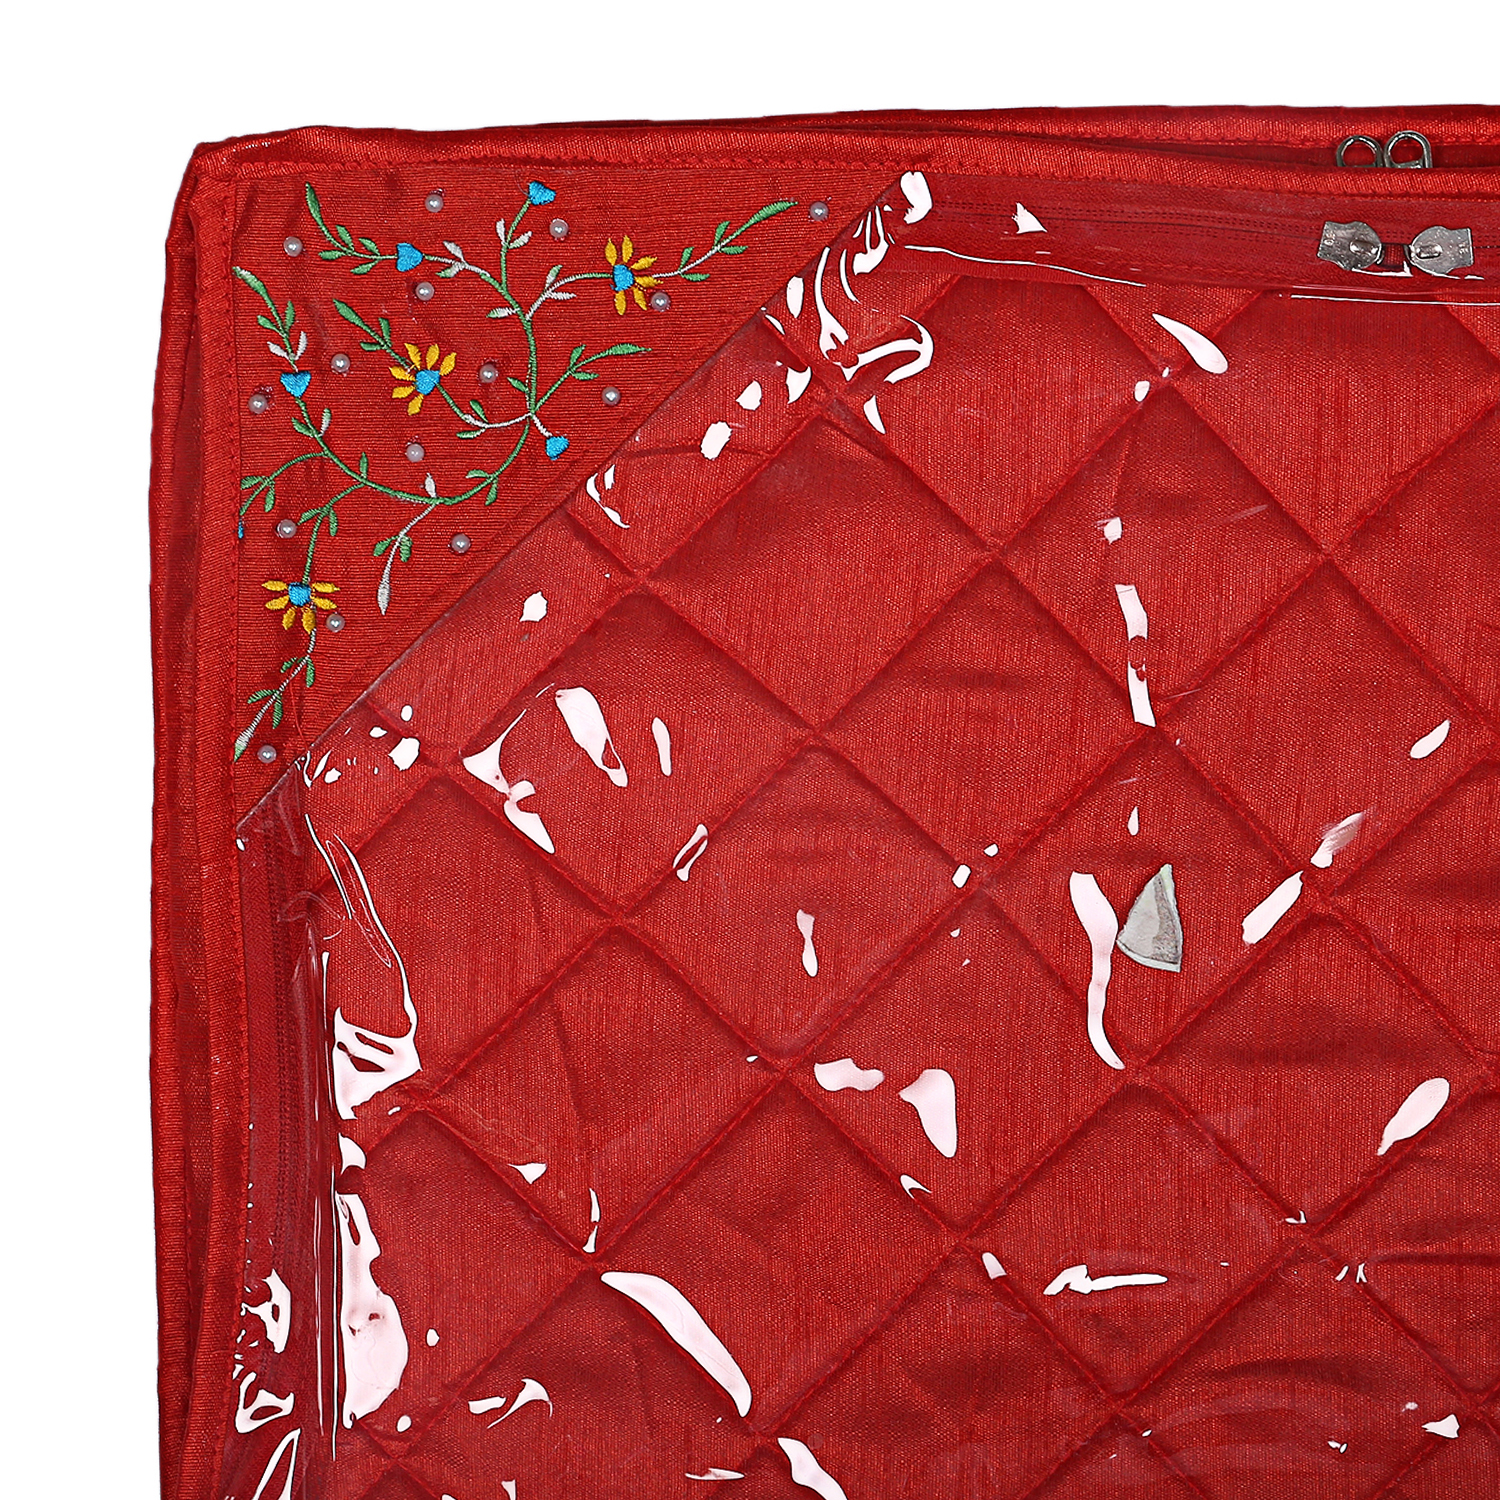 Kuber Industries Silk 3 Pieces Single Packing Saree Cover (Red) -CTLTC10599